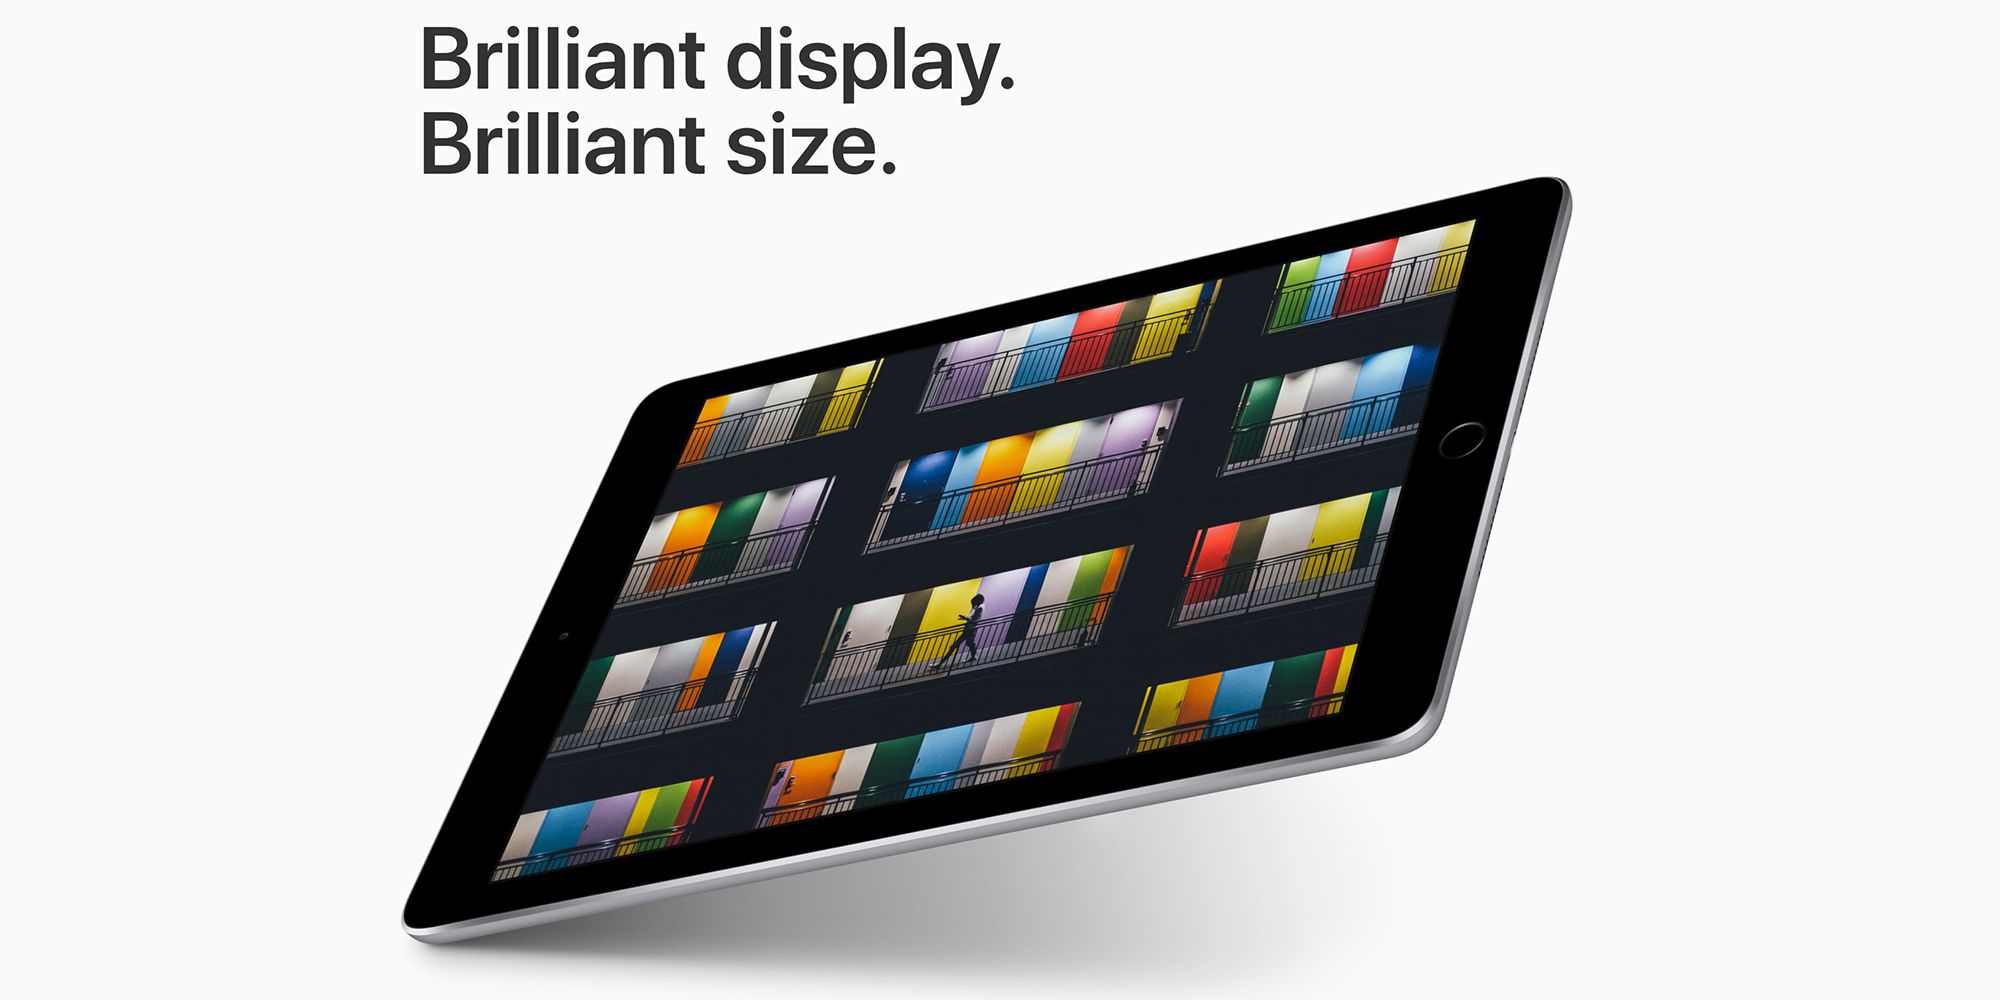 Nearly every iPad model is on sale today at Staples and B&H